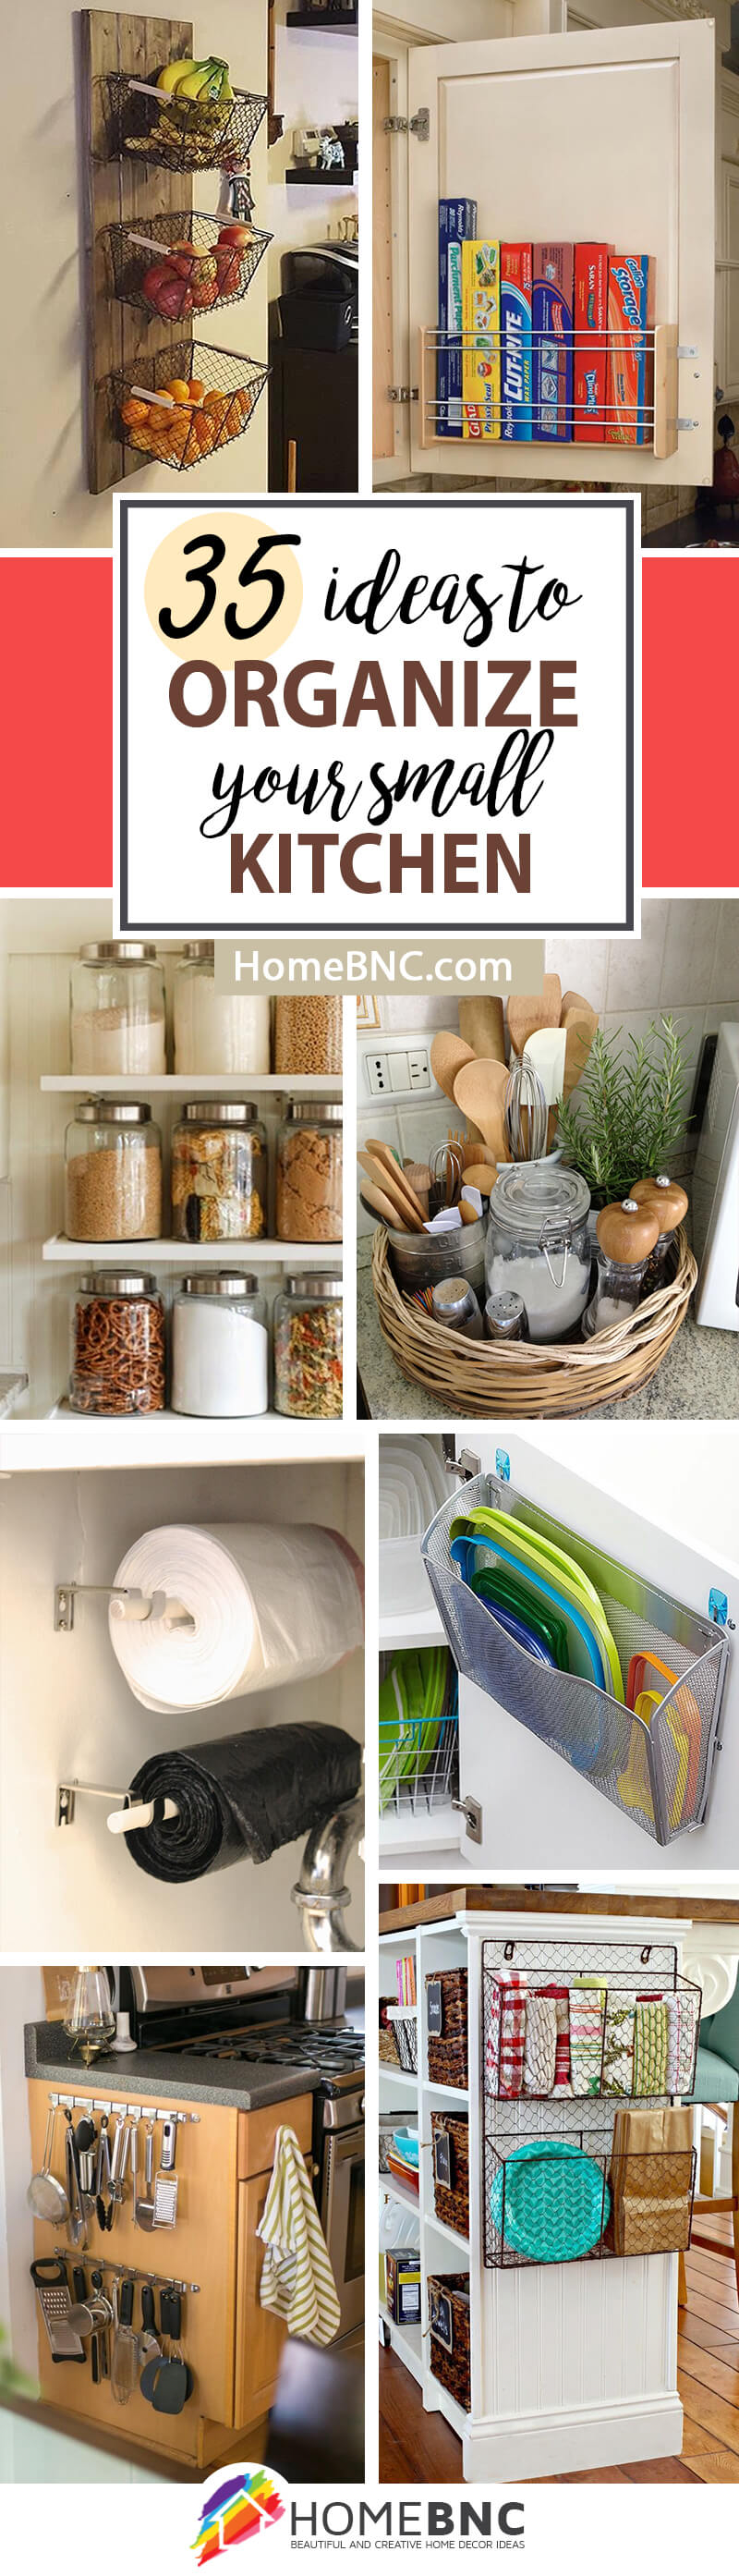 Small kitchen storage ideas storage ideas and stunning for Small kitchen organizing ideas